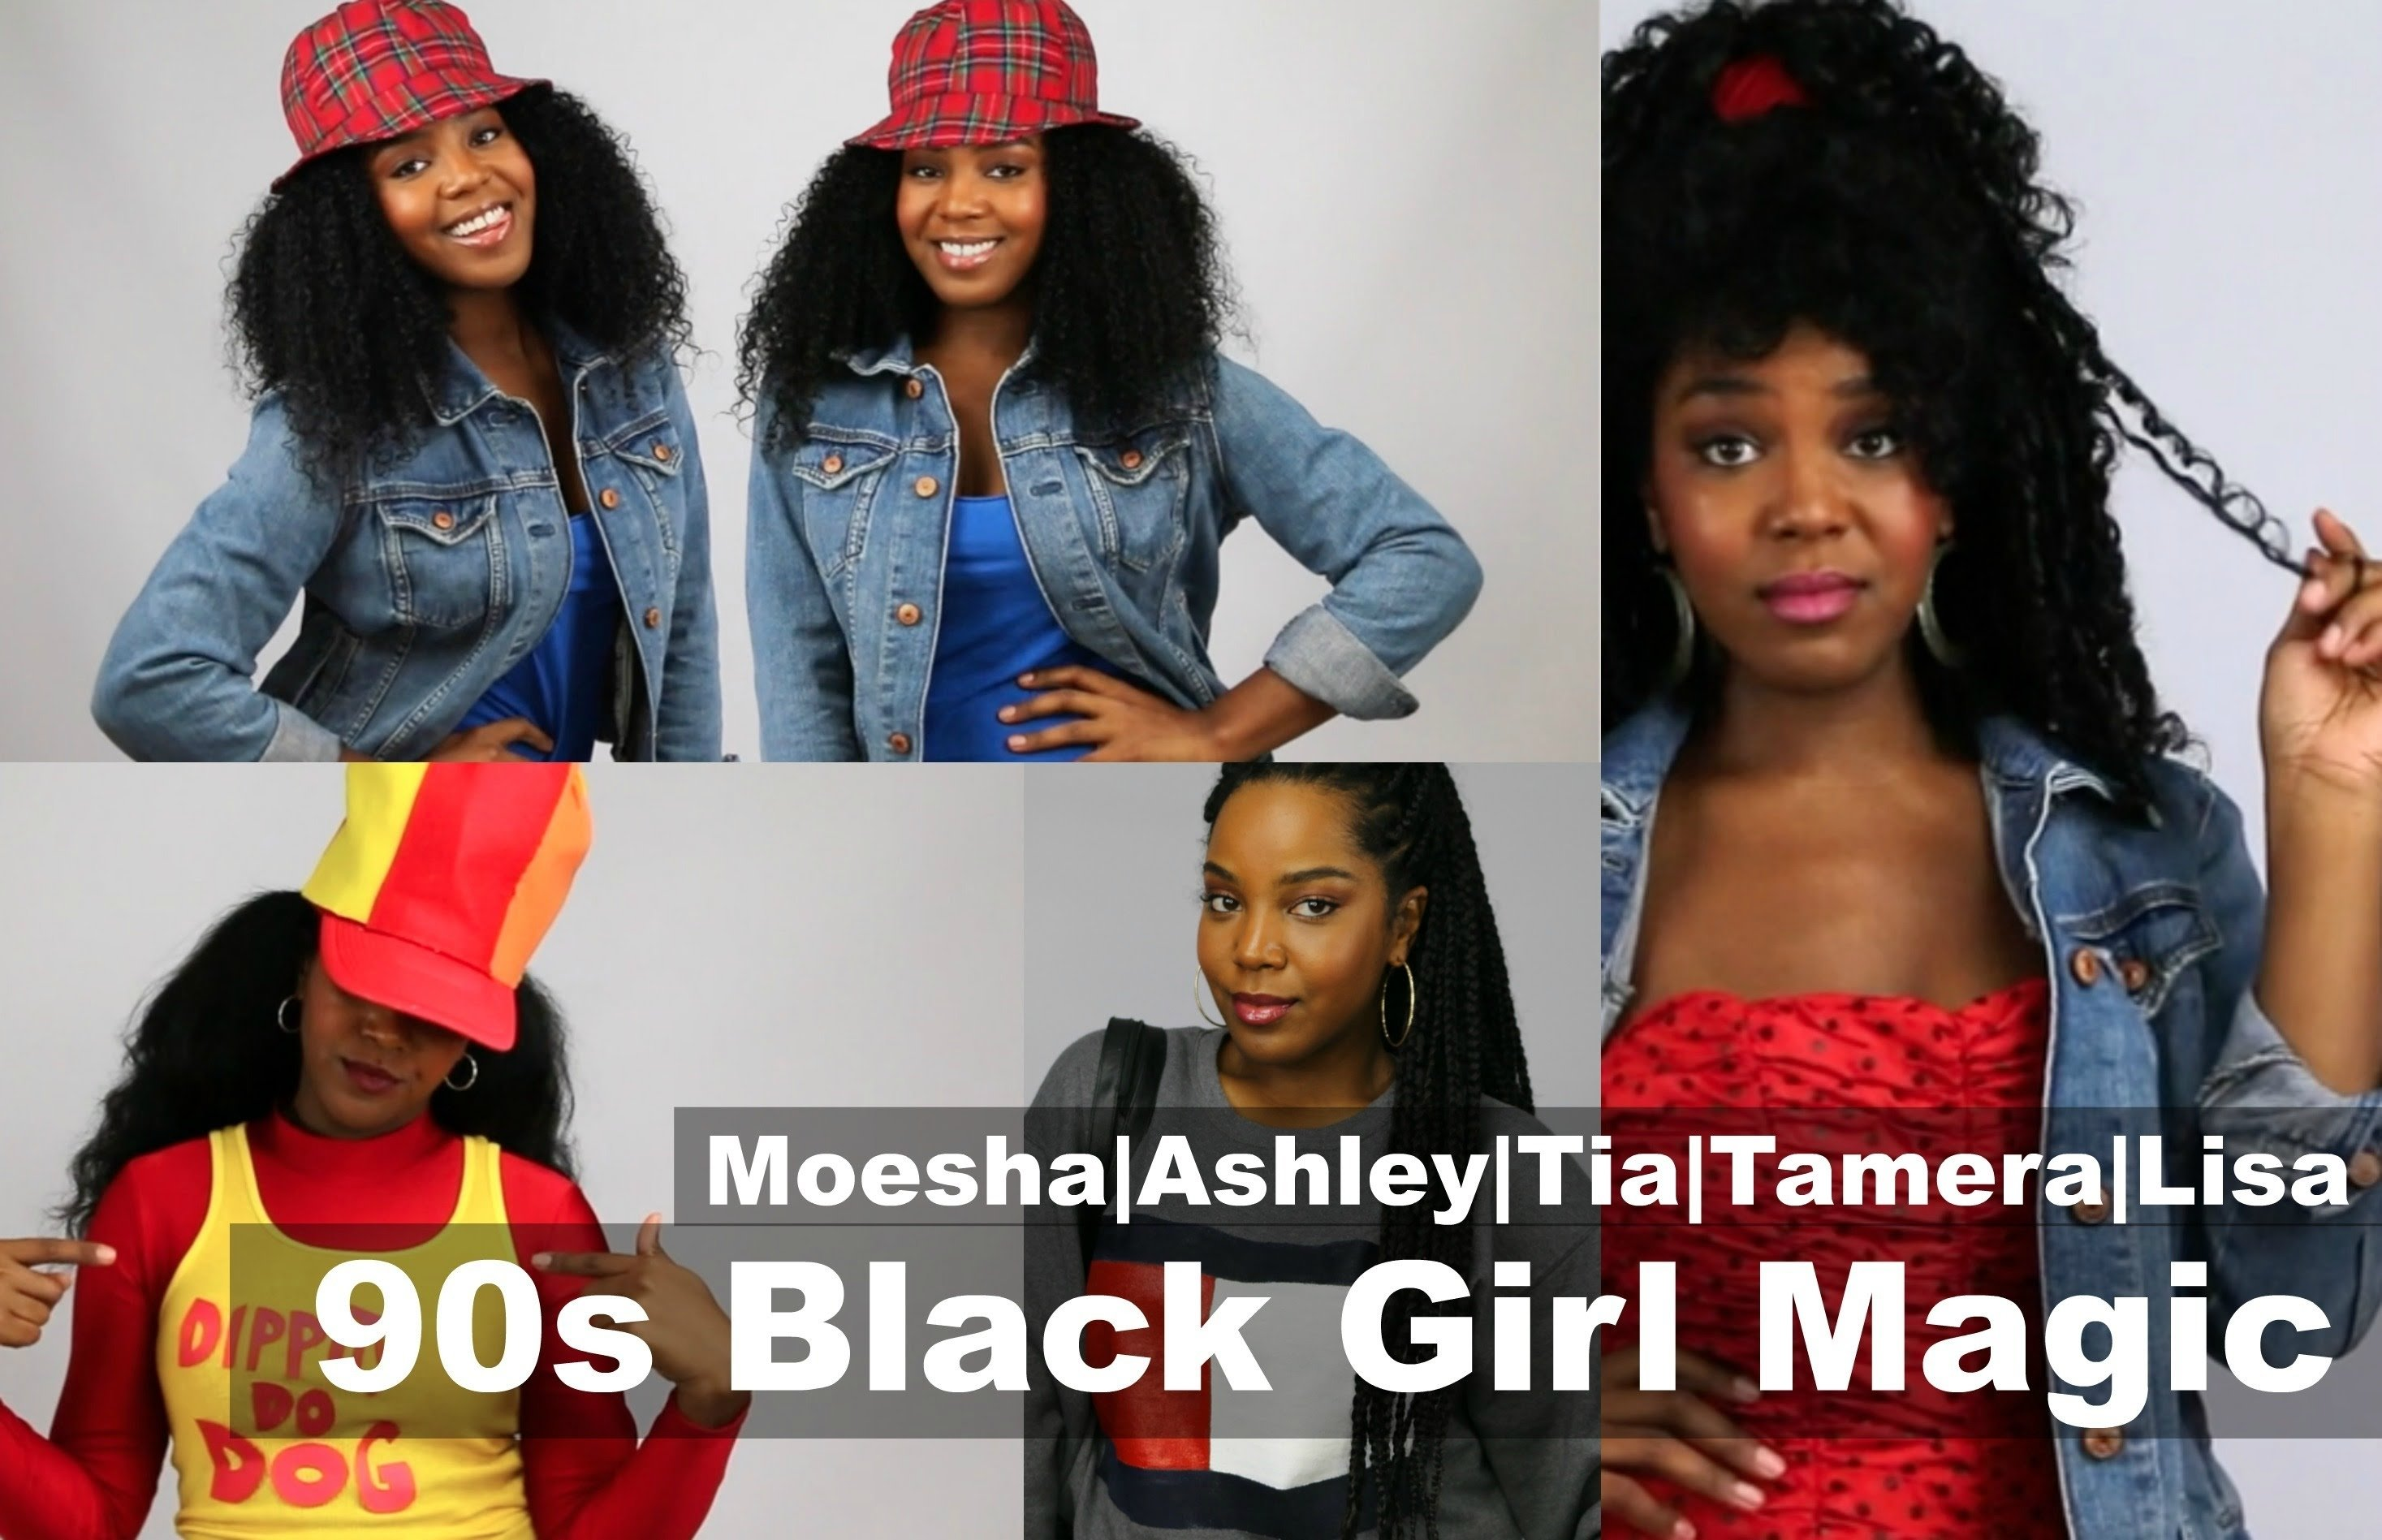 10 Most Recommended Black Girl Halloween Costume Ideas 90s sitcom brown girls hair fashion lookbook black girl magic 1 2020